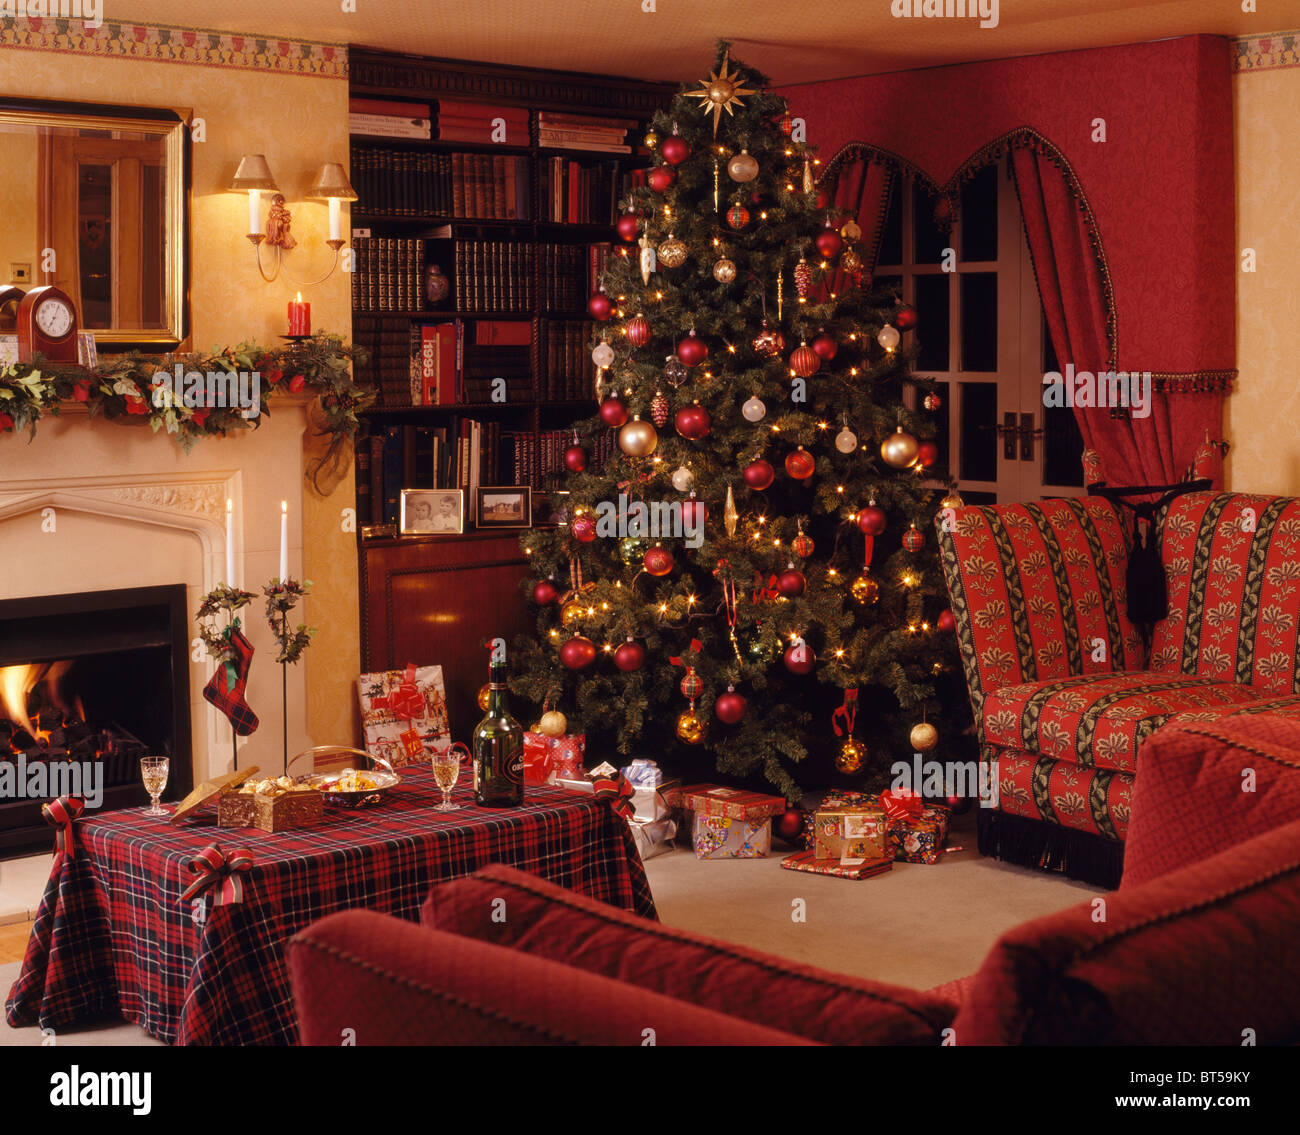 How To Decorate A Live Christmas Tree: Wrapped Gifts Below Christmas Tree In Corner Of